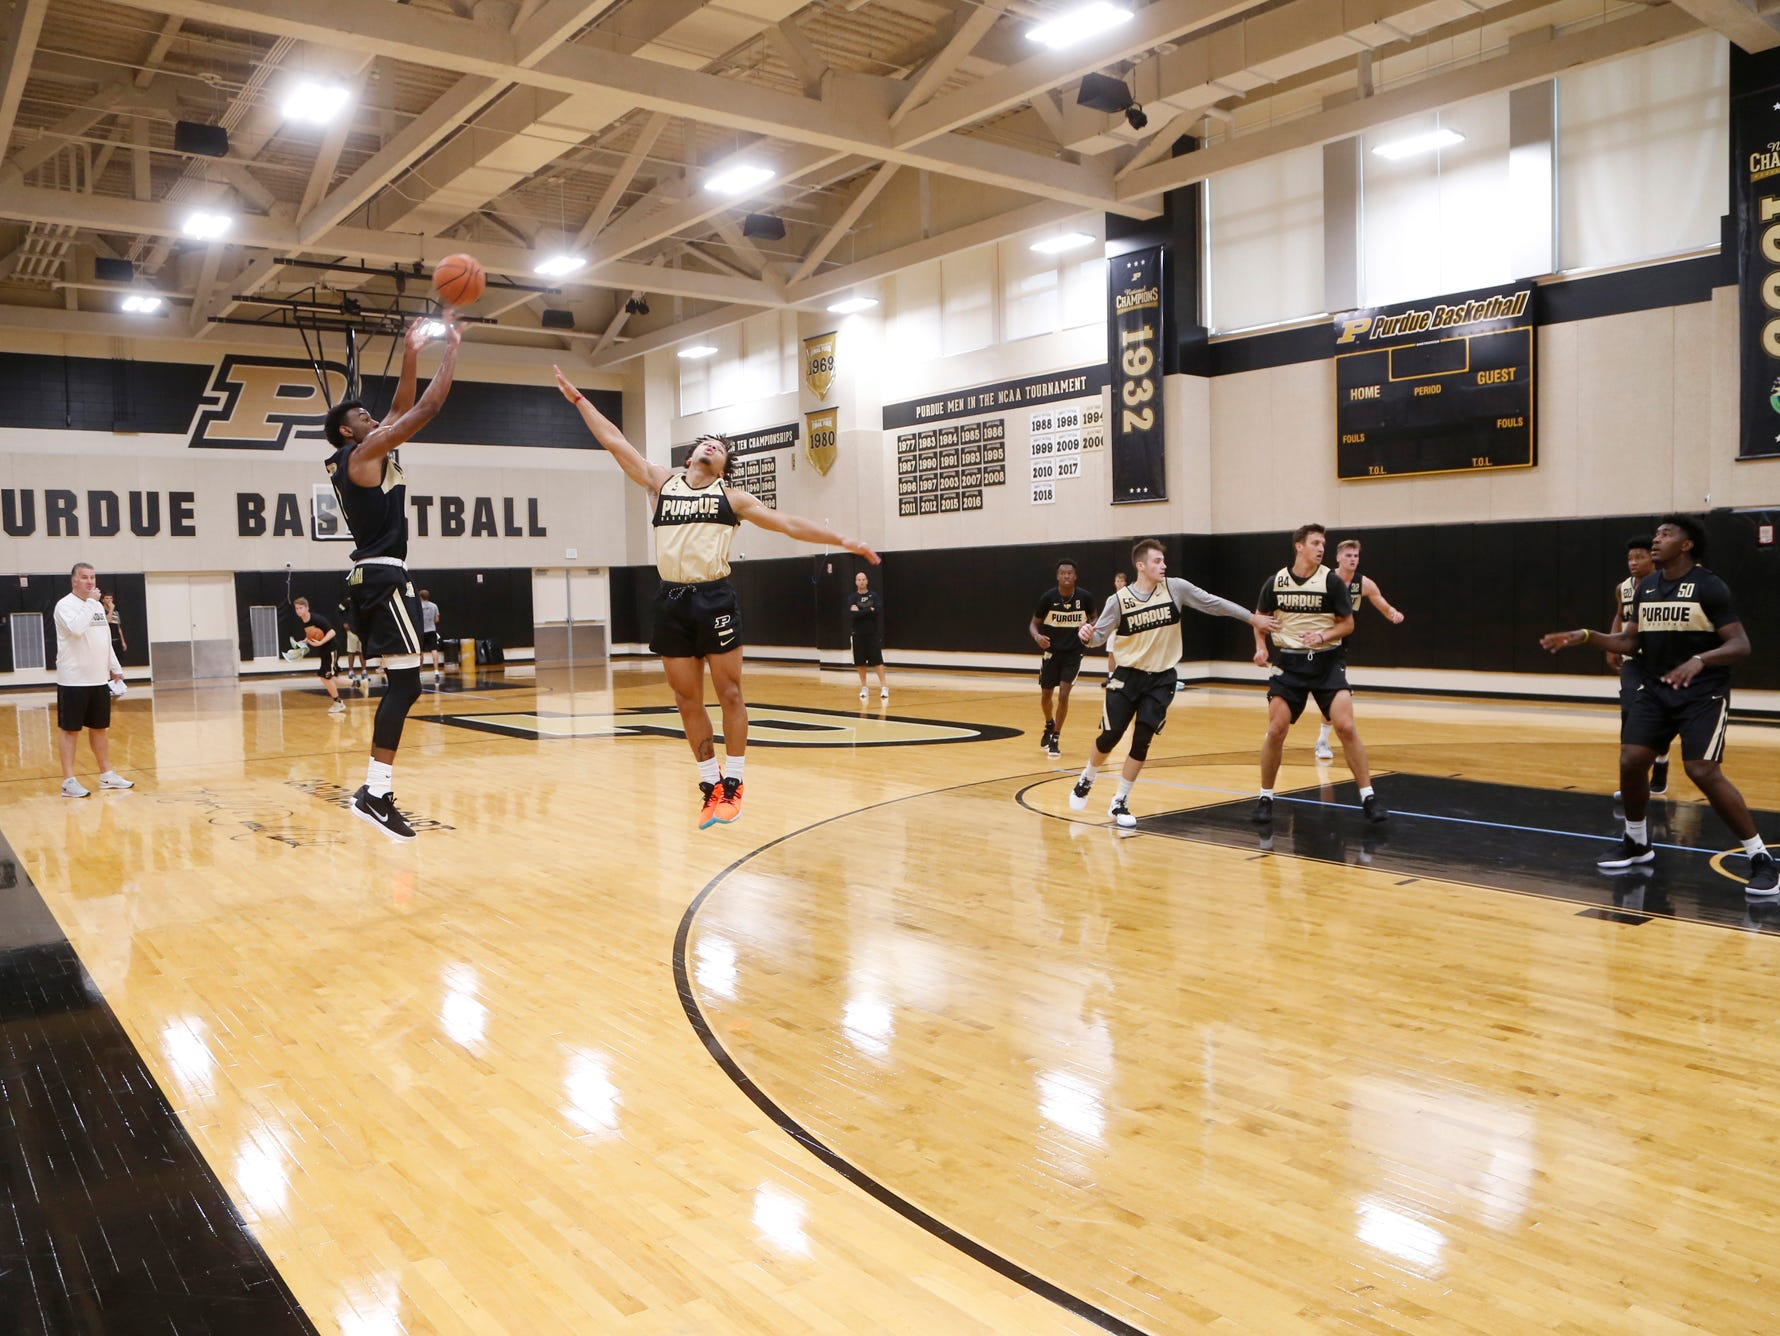 Aaron Wheeler with a shot over Carsen Edwards from beyond the three point line during the first official practice of the season for Purdue men's basketball Tuesday, September 25, 2018, at Cardinal Court in Mackey Arena.